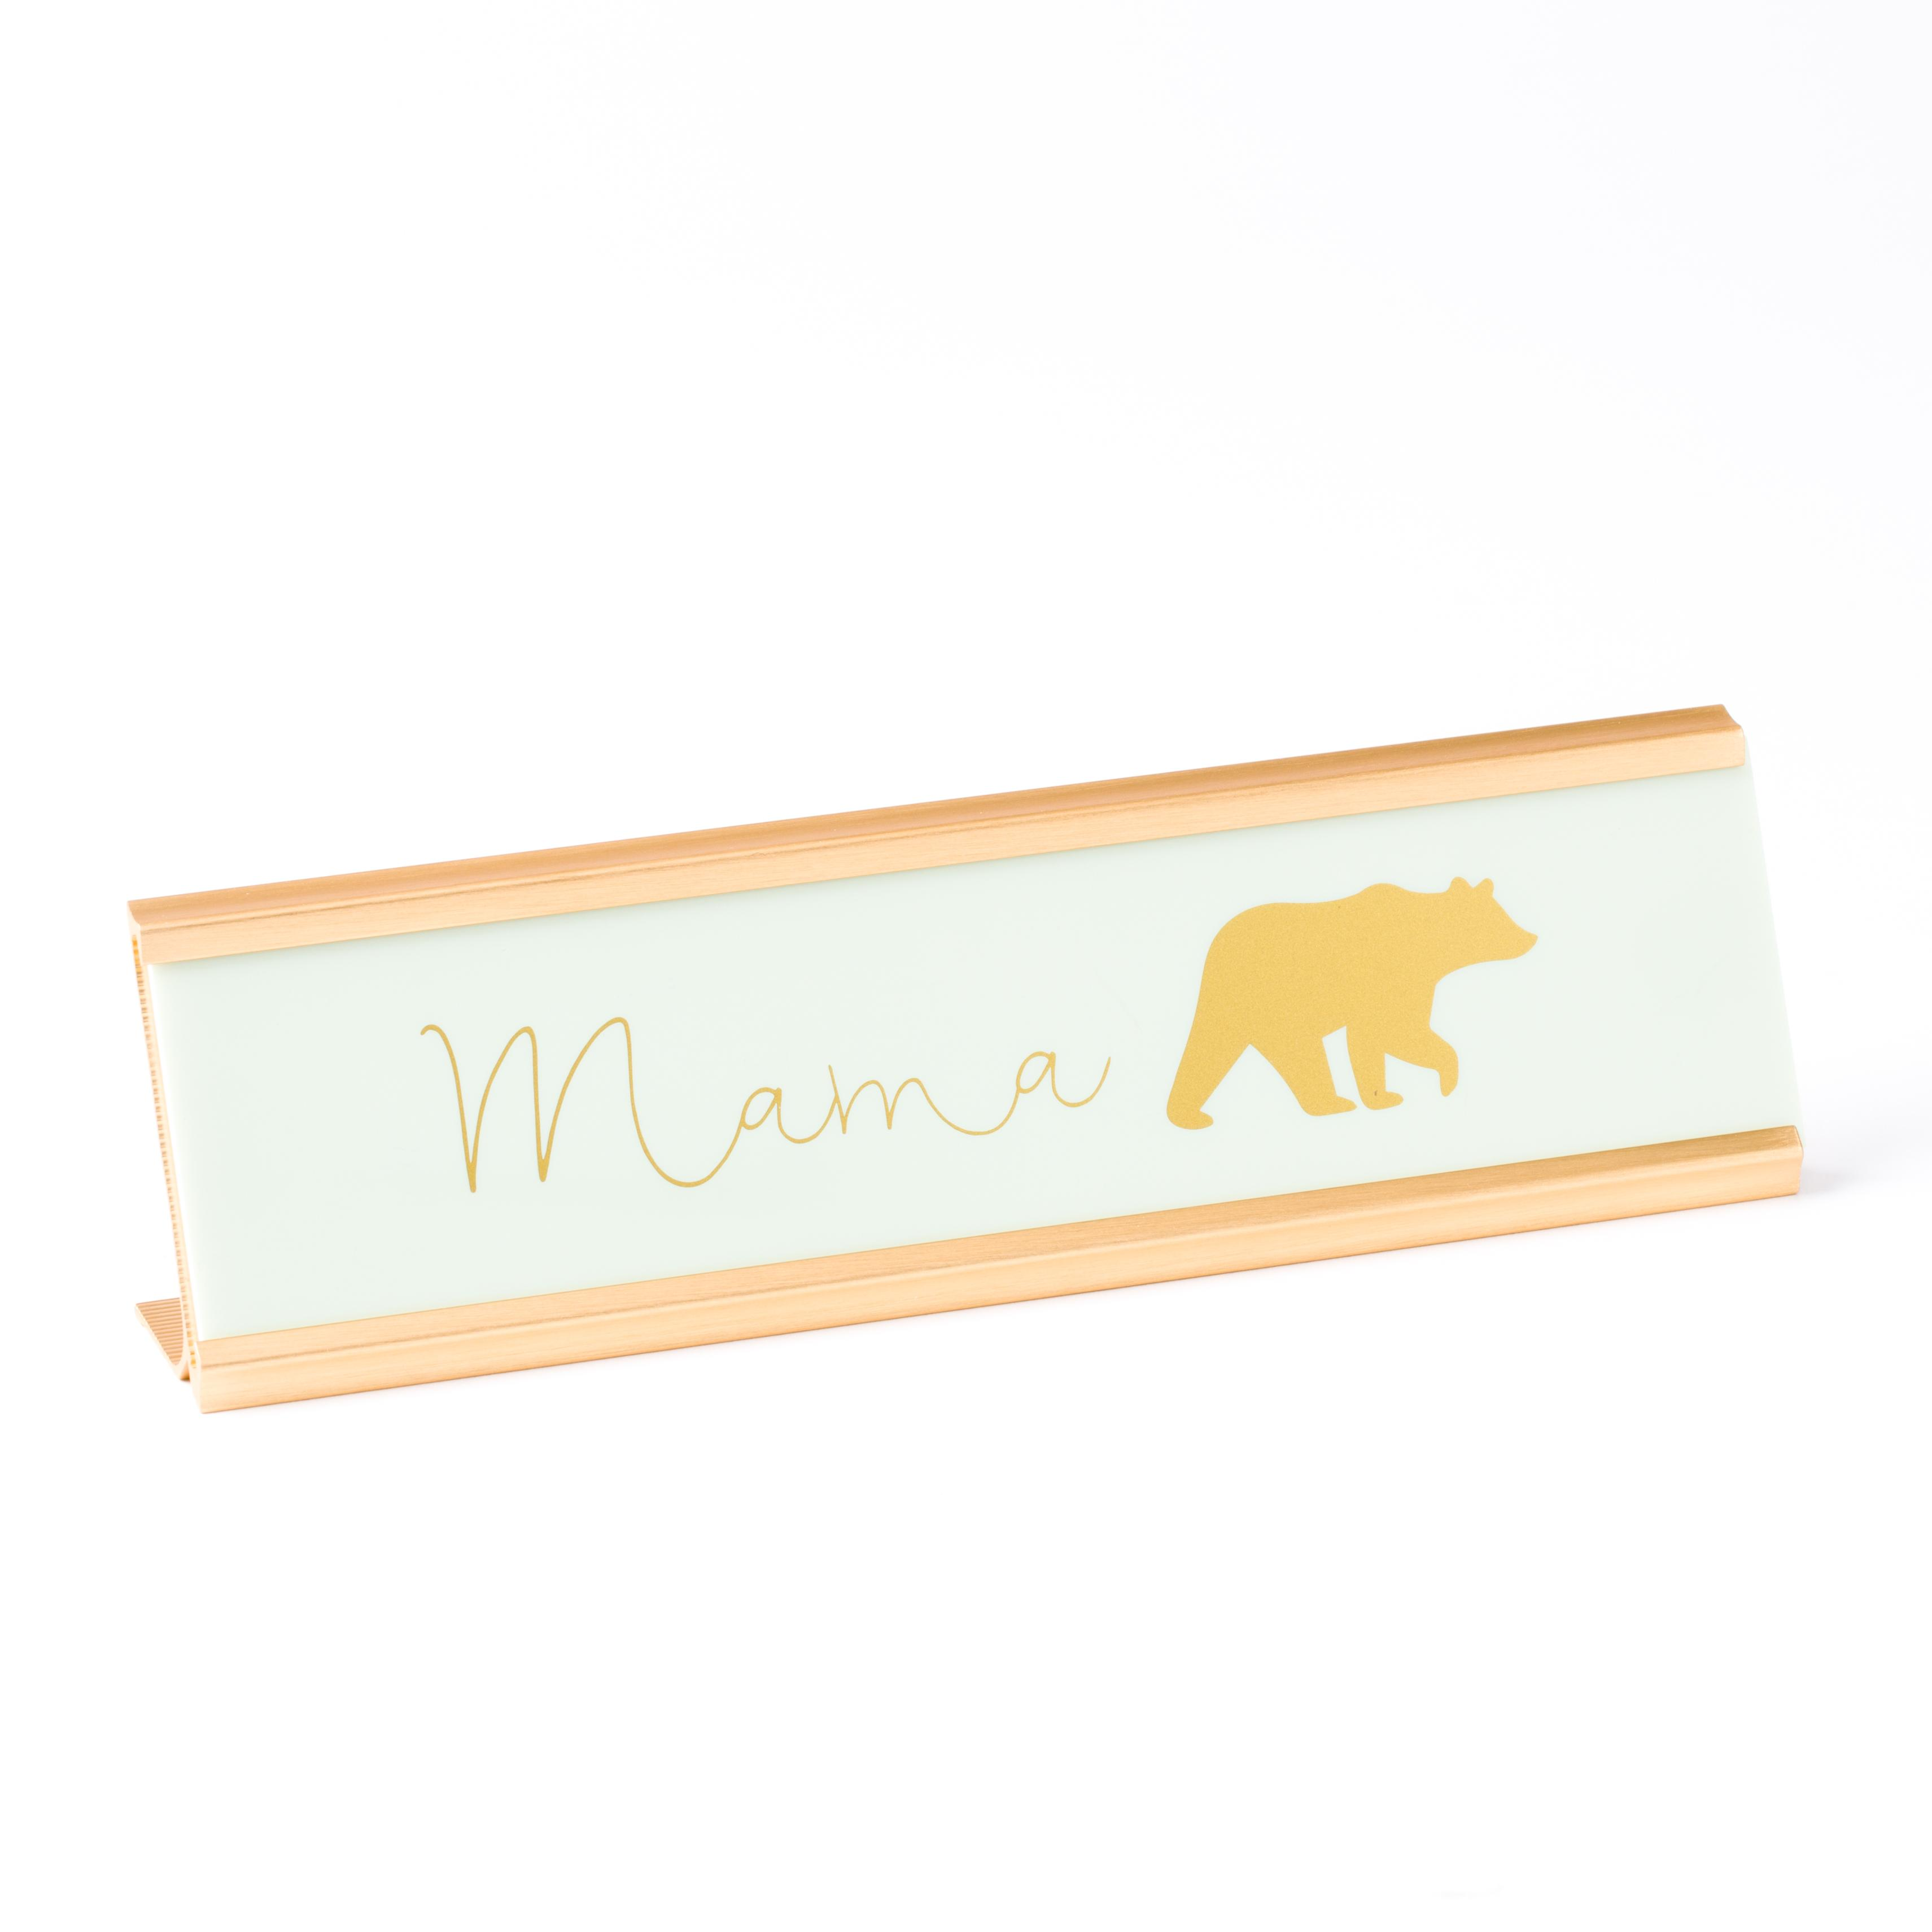 PAPYRUS Mama Bear Desk Plaque // Price: $12.95 // Purchase at PAPYRUS stores // (Photo: PAPYRUS)